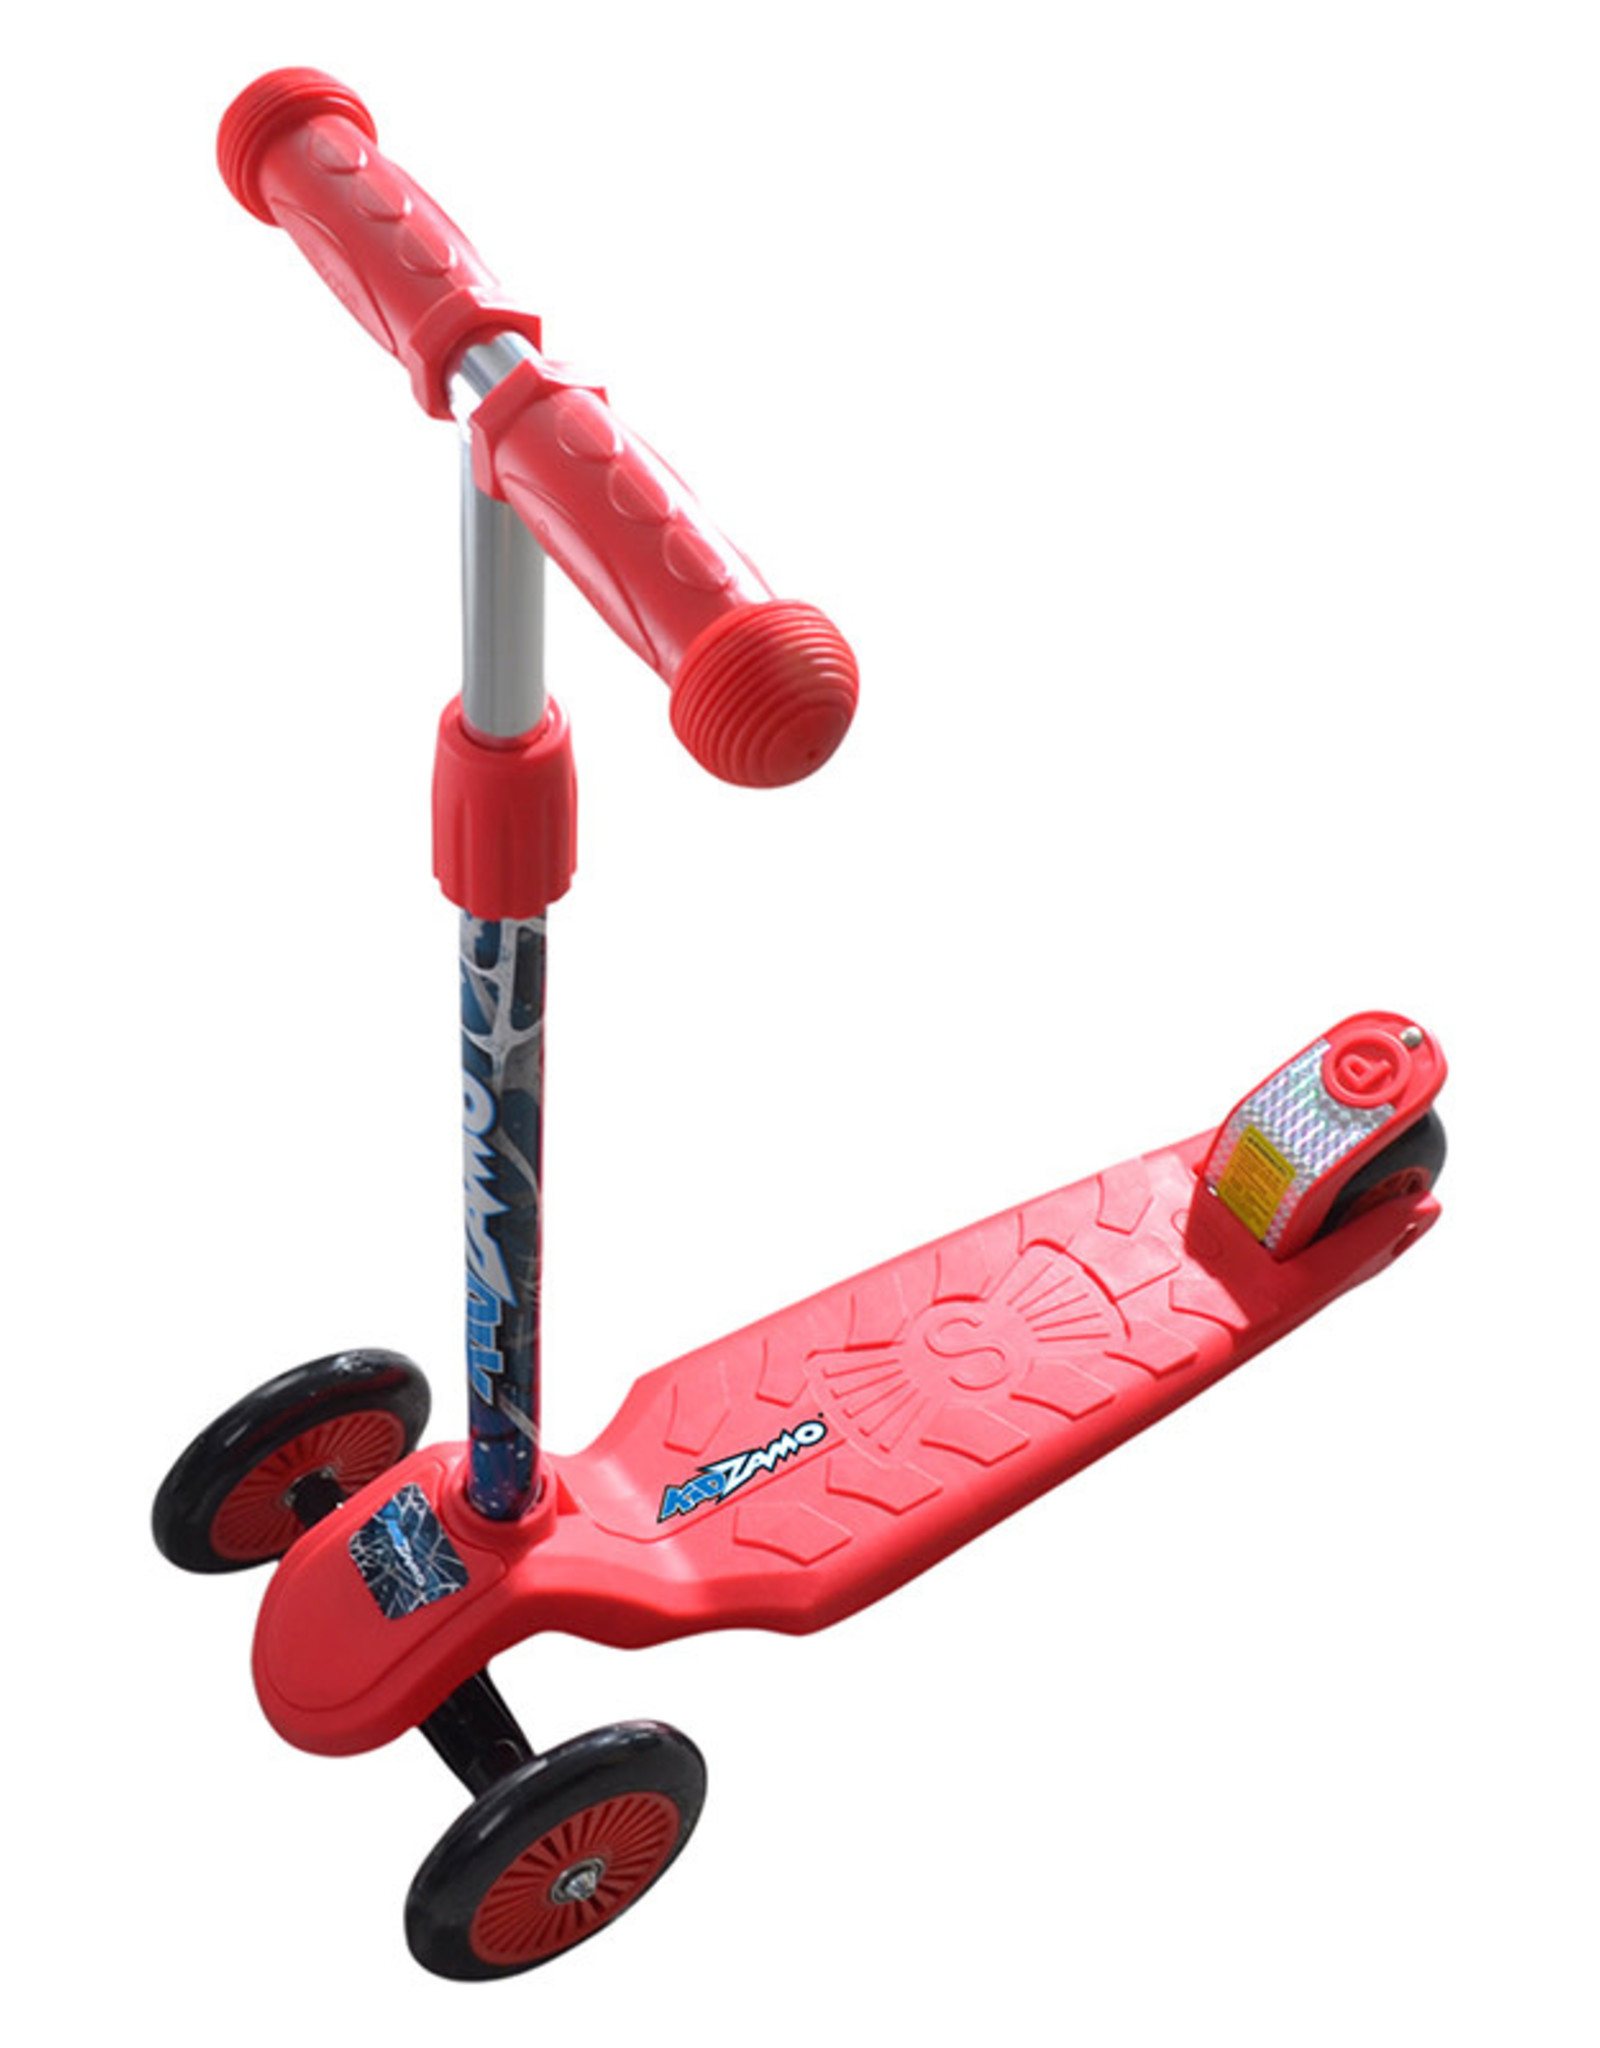 KIDZAMO KidZamo 3-Wheel Tri-Mini Scooter